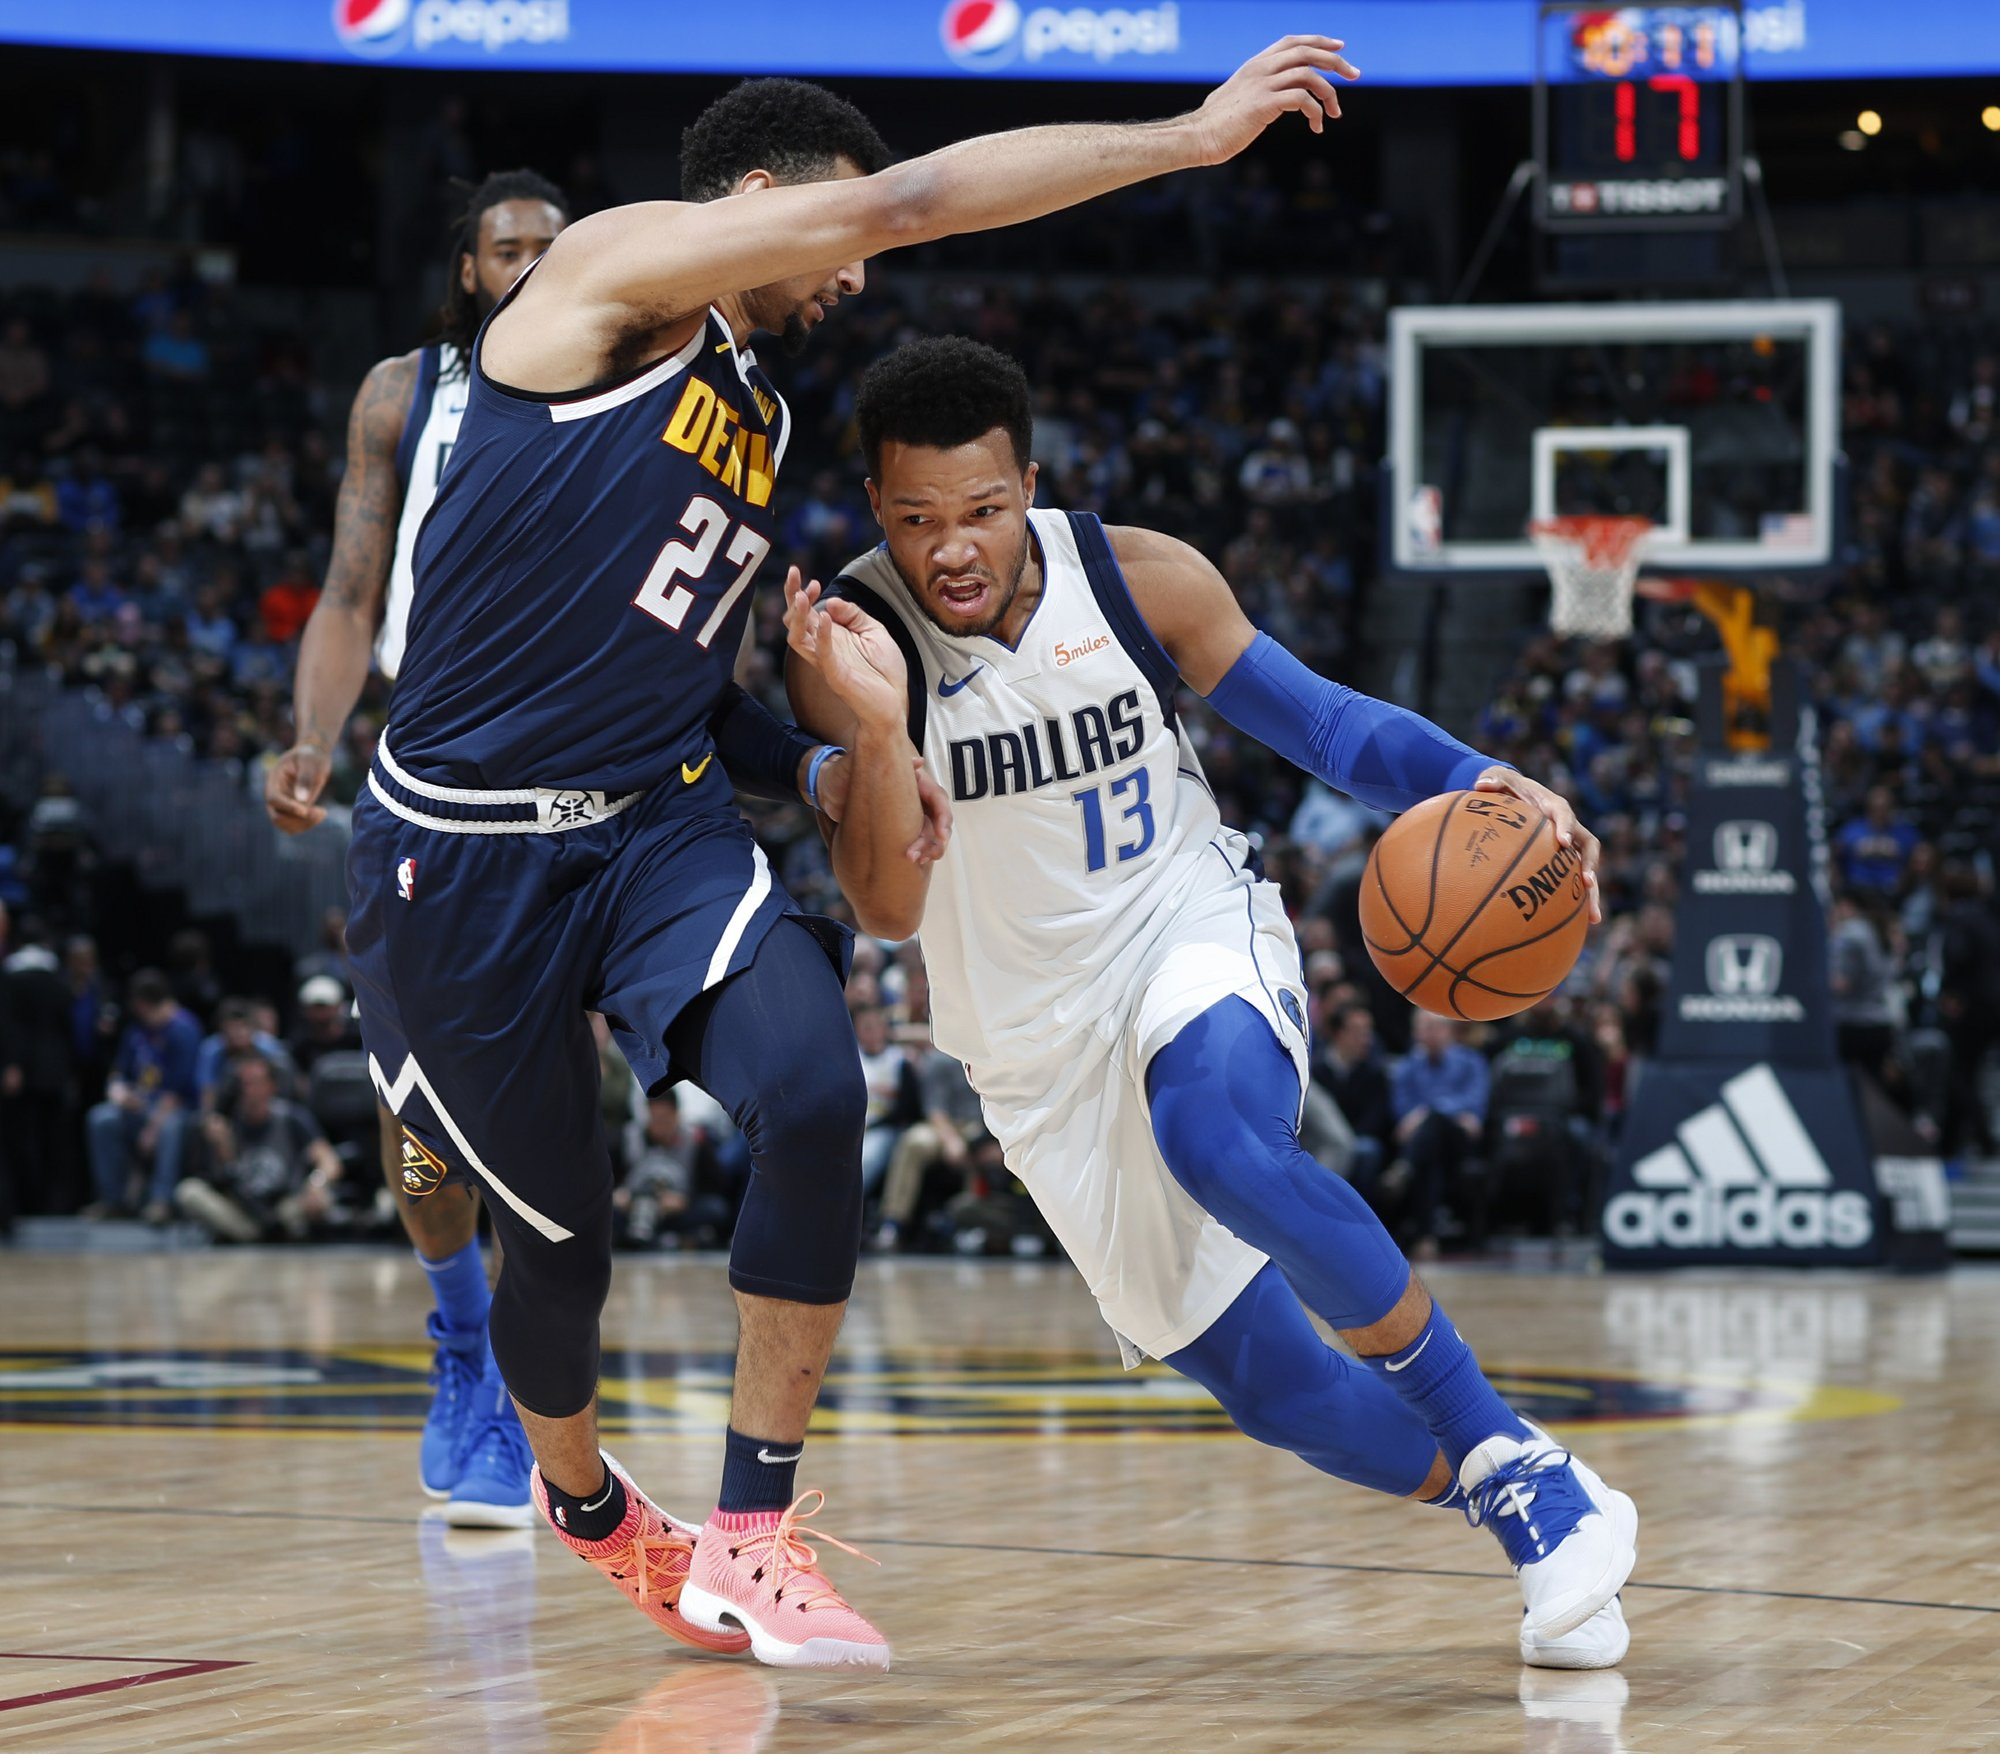 Dallas Mavericks guard Jalen Brunson, right, drives past Denver Nuggets guard Jamal Murray in the first half of an NBA basketball game Tuesday, Dec. 18, 2018, in Denver. (AP Photo/David Zalubowski)